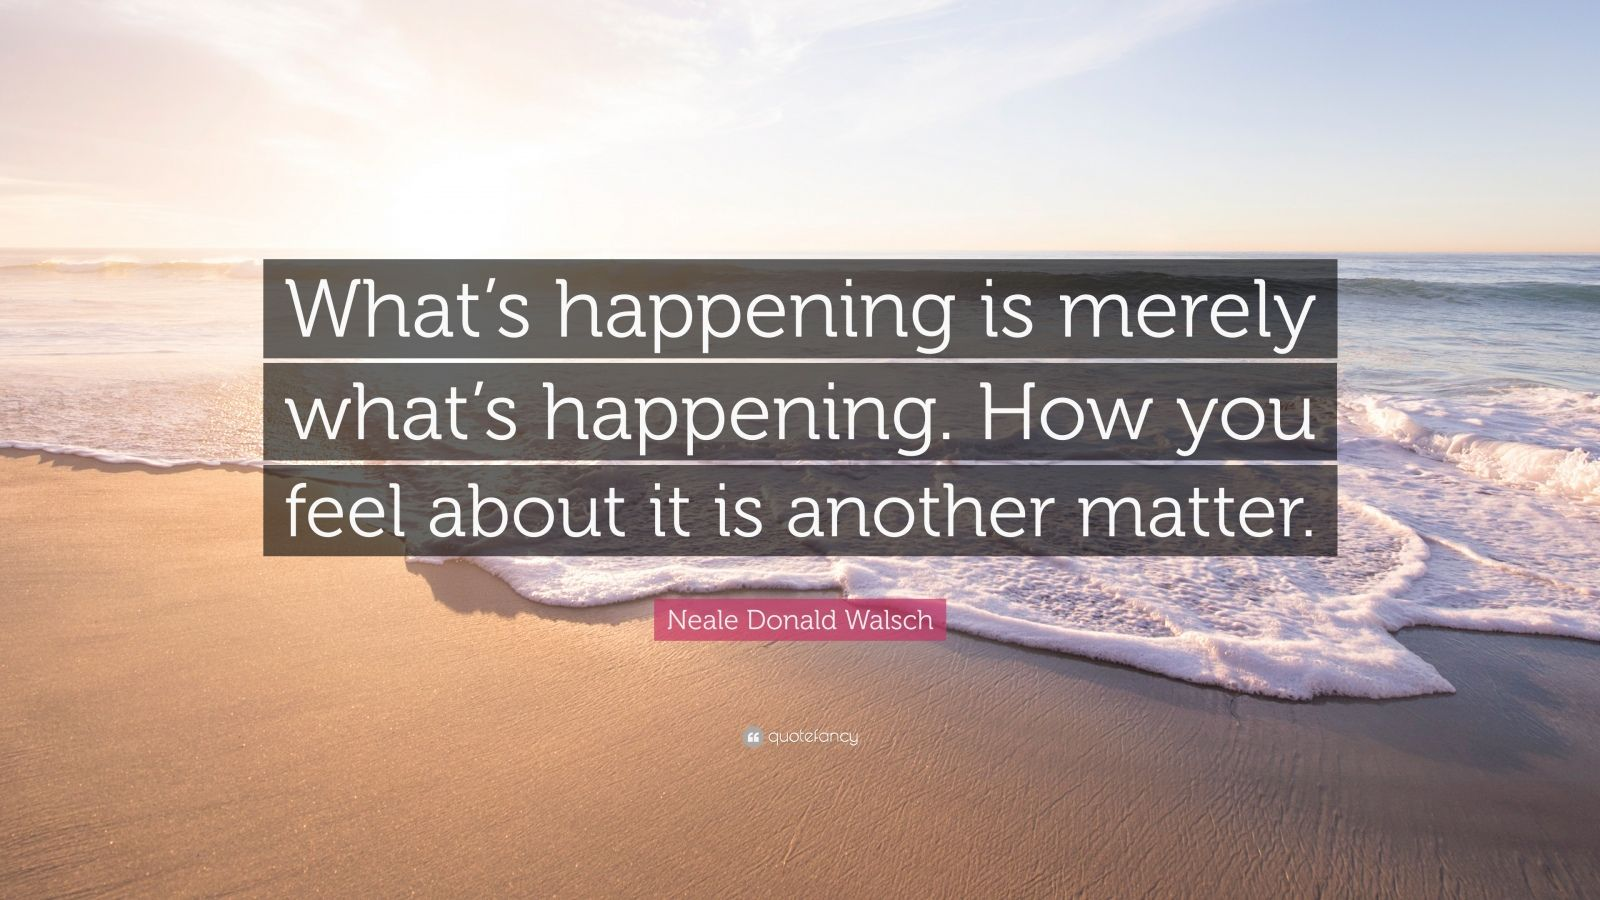 """Neale Donald Walsch Quote: """"What's happening is merely what's happening. How you feel about it is another matter."""""""